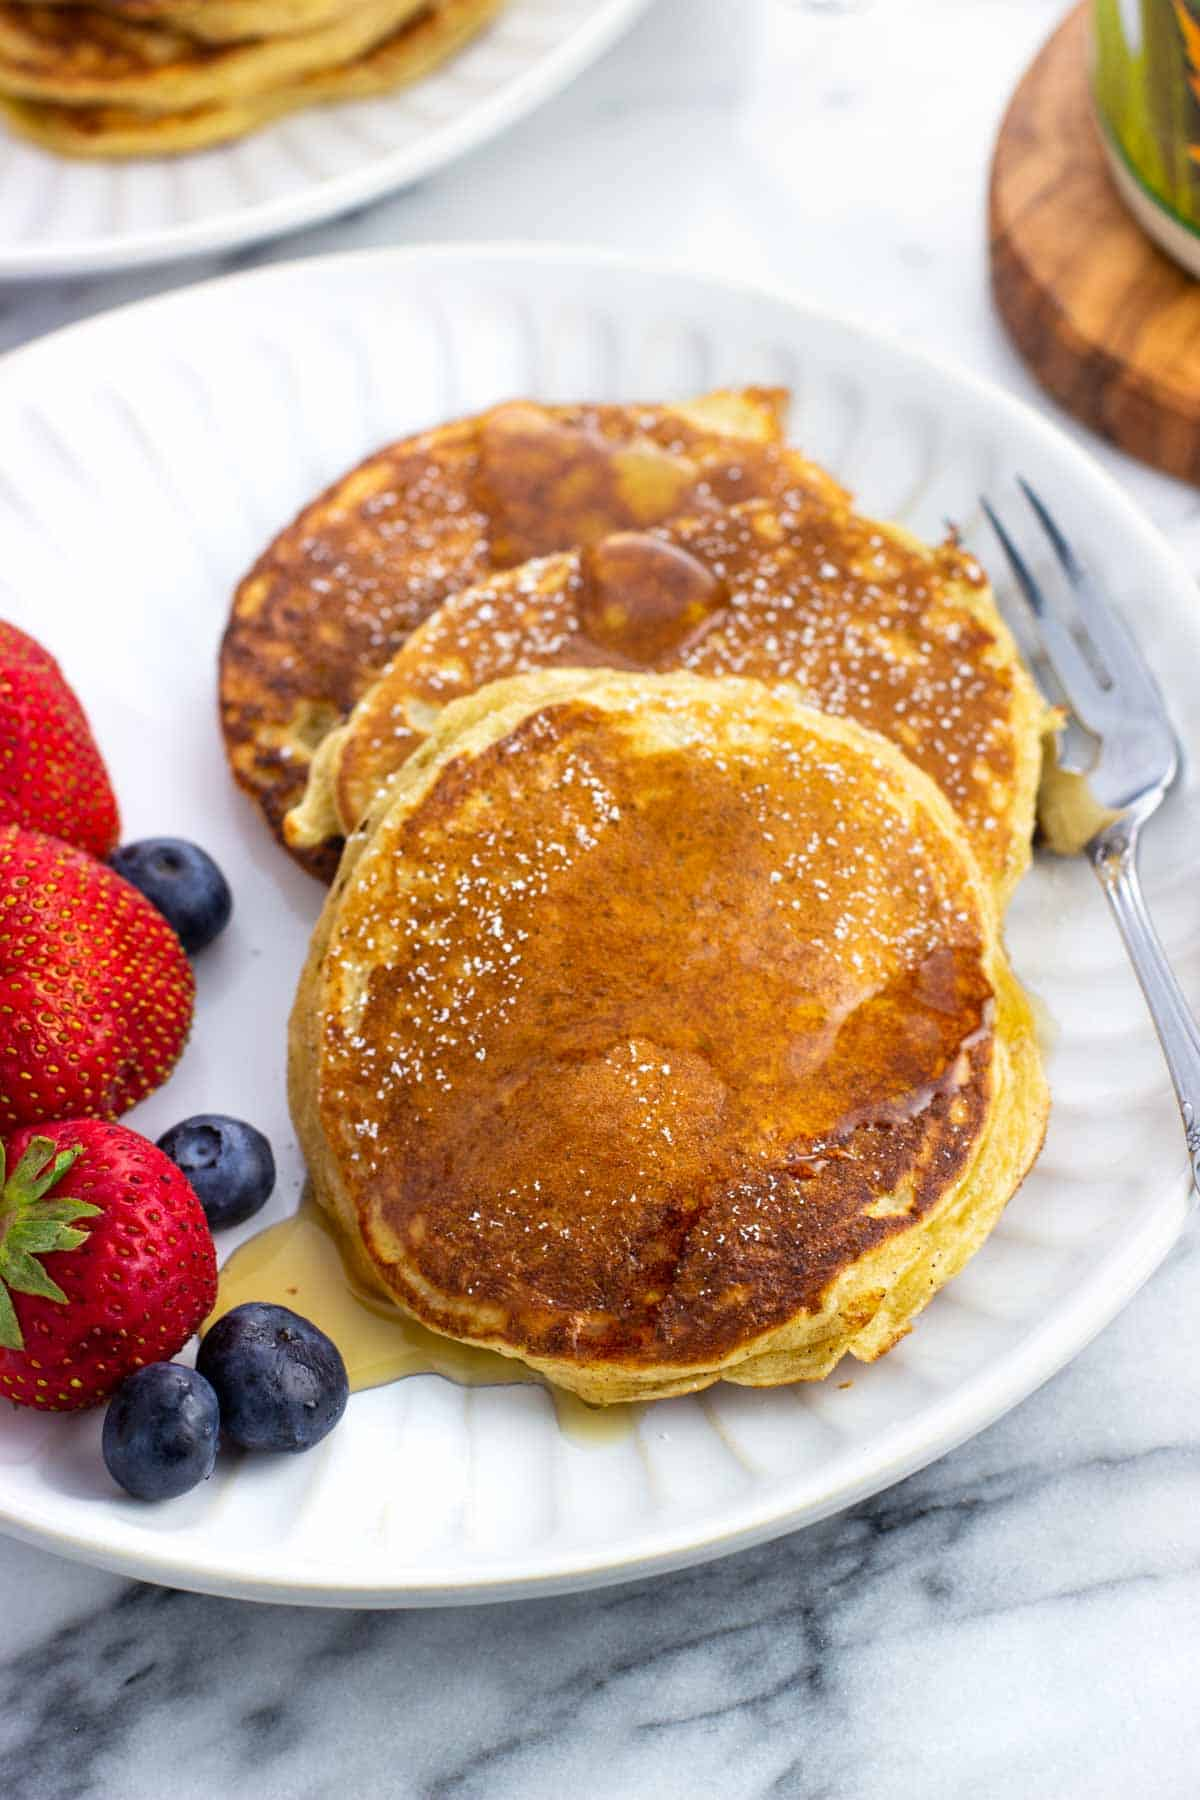 Three cottage cheese pancakes and berries on a plate drizzled with maple syrup.